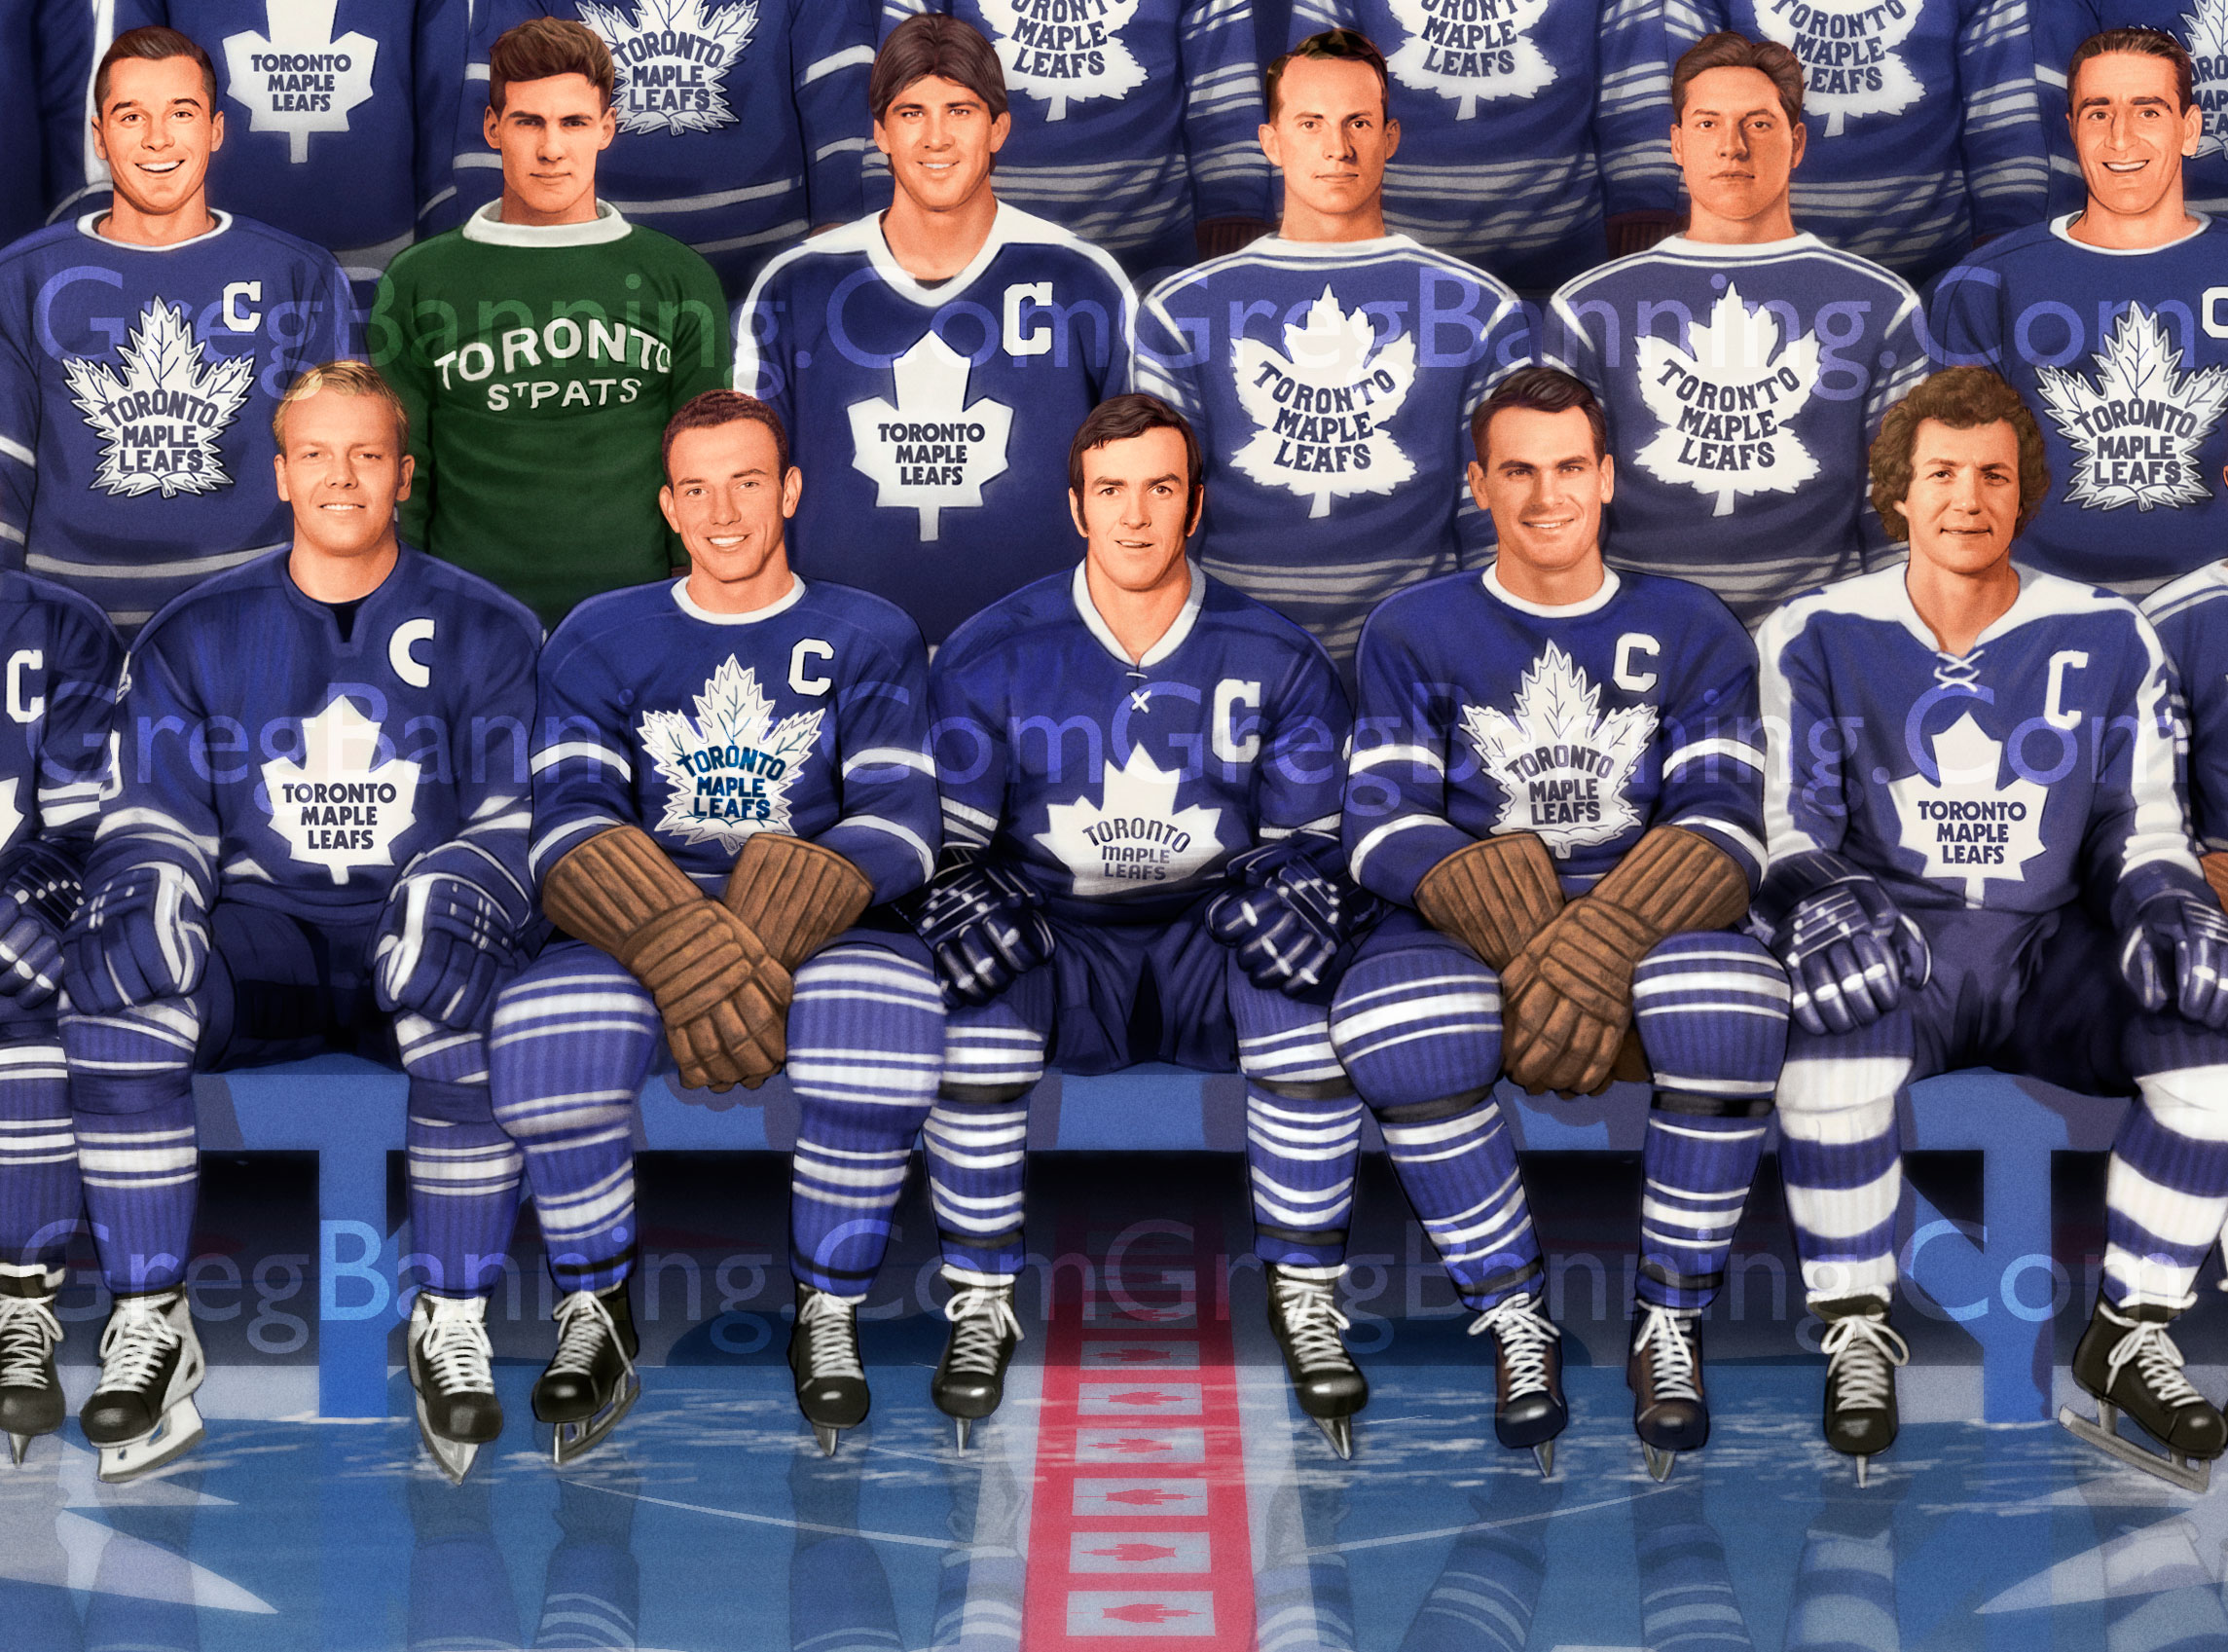 Toronto Maple Leaf Centennial Poster Detail